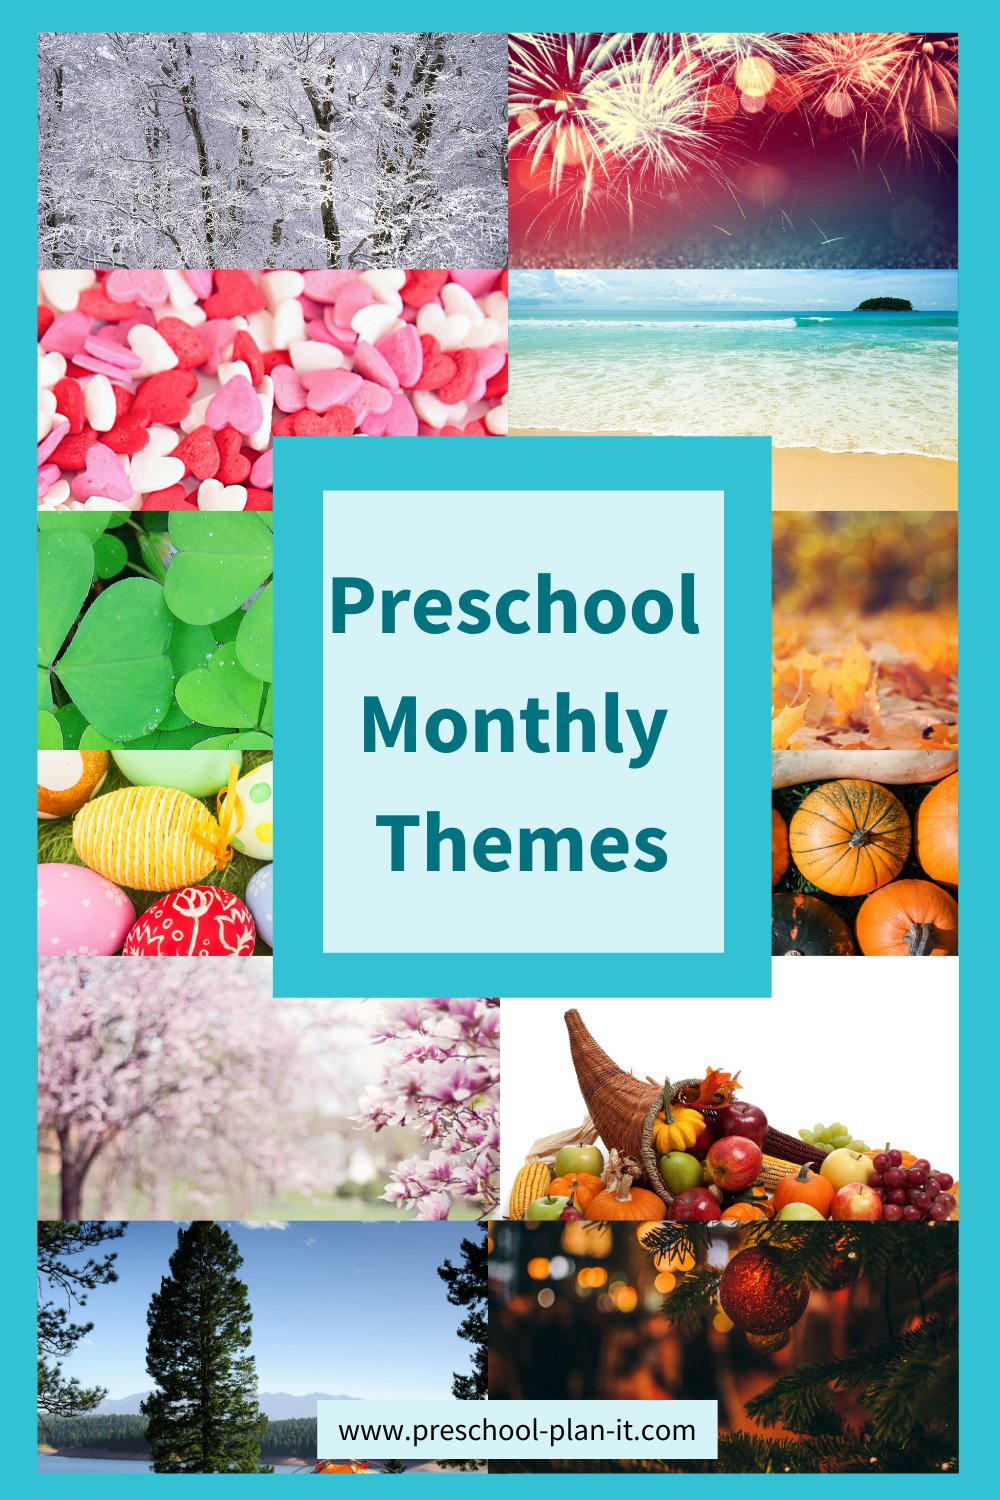 Images for each month for preschool monthly themes